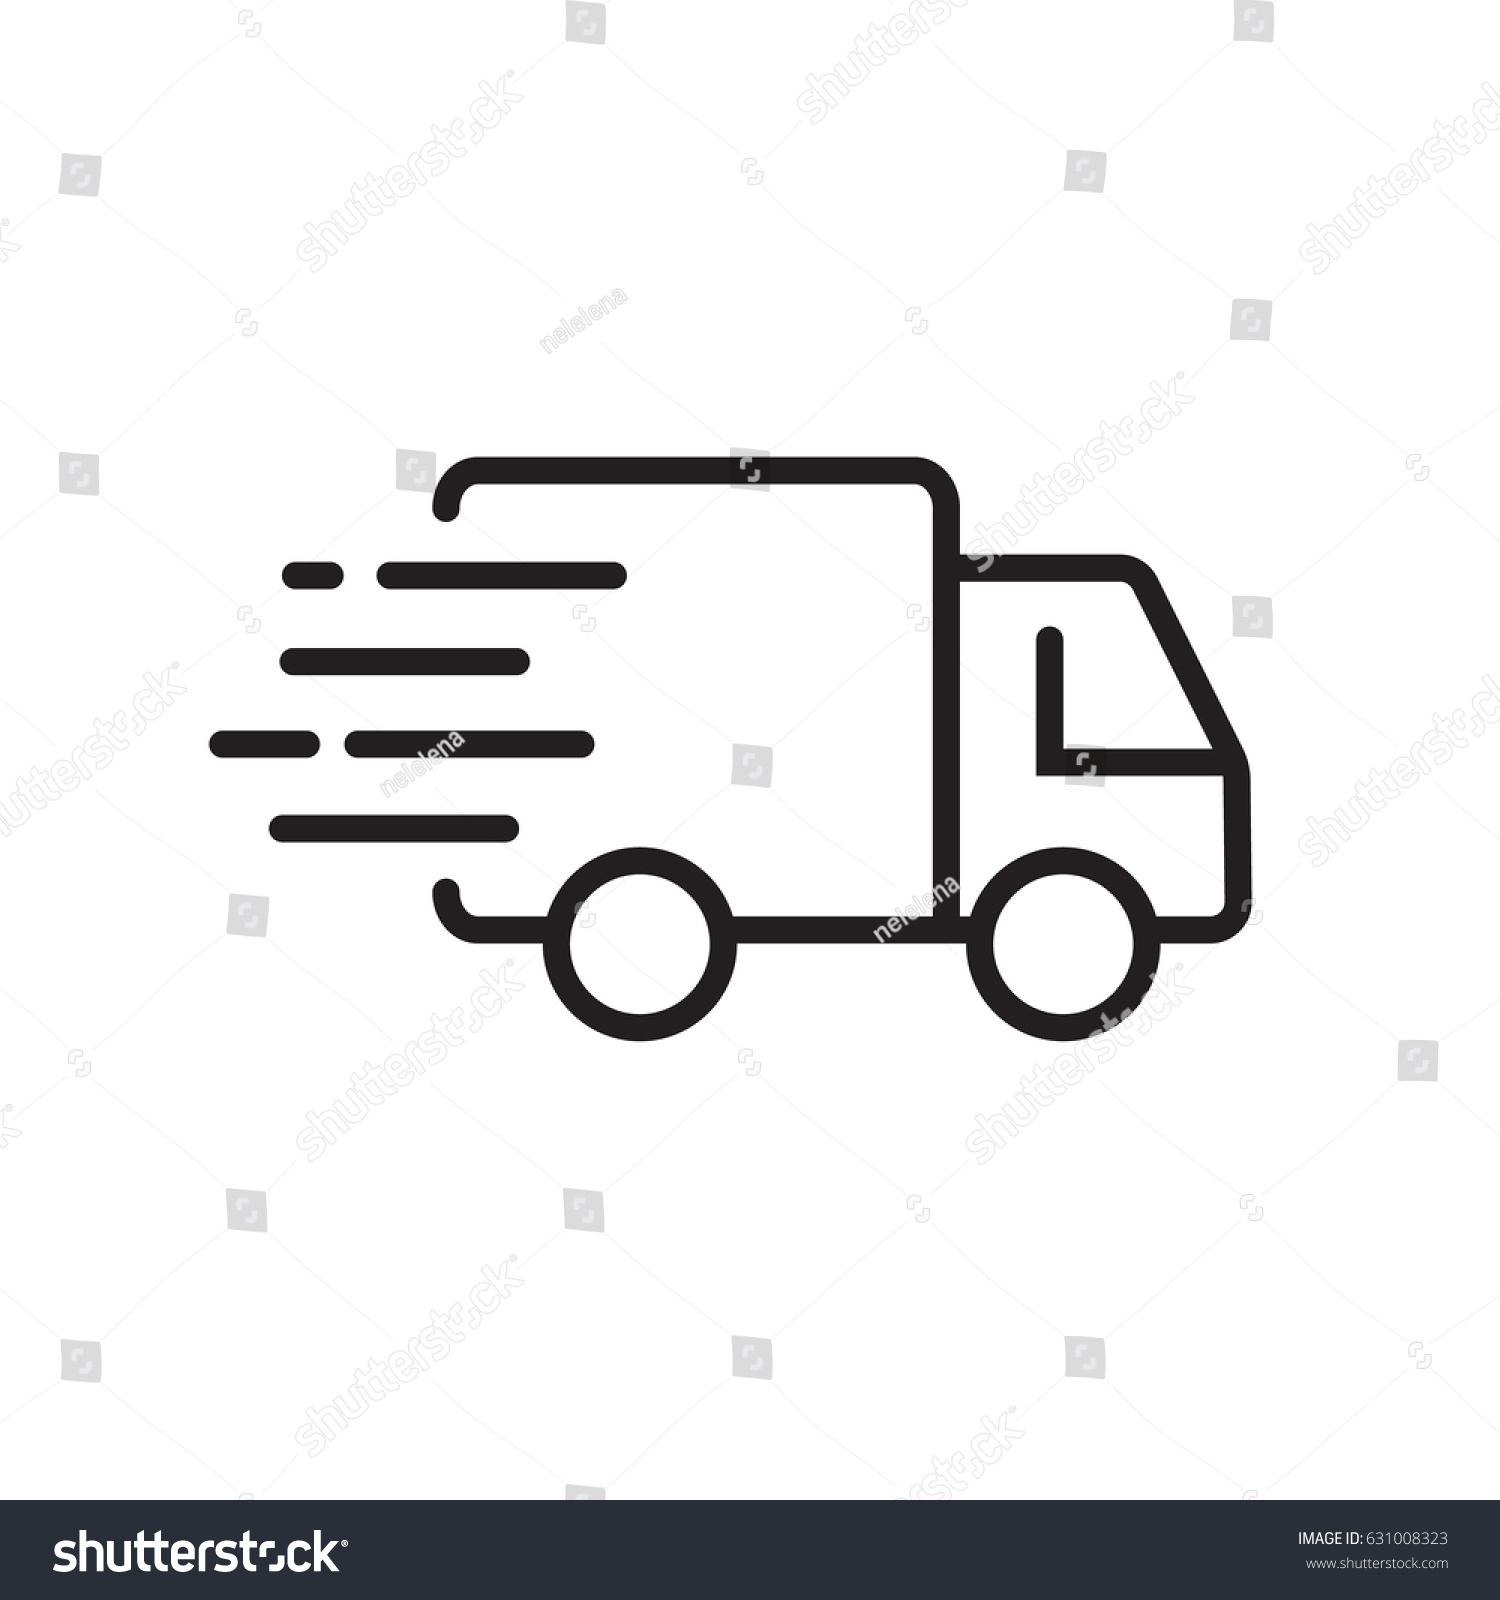 Fast Shipping Delivery Truck Line Icon Stock Vector 631008323 - Shutterstock  Fast Shipping D...